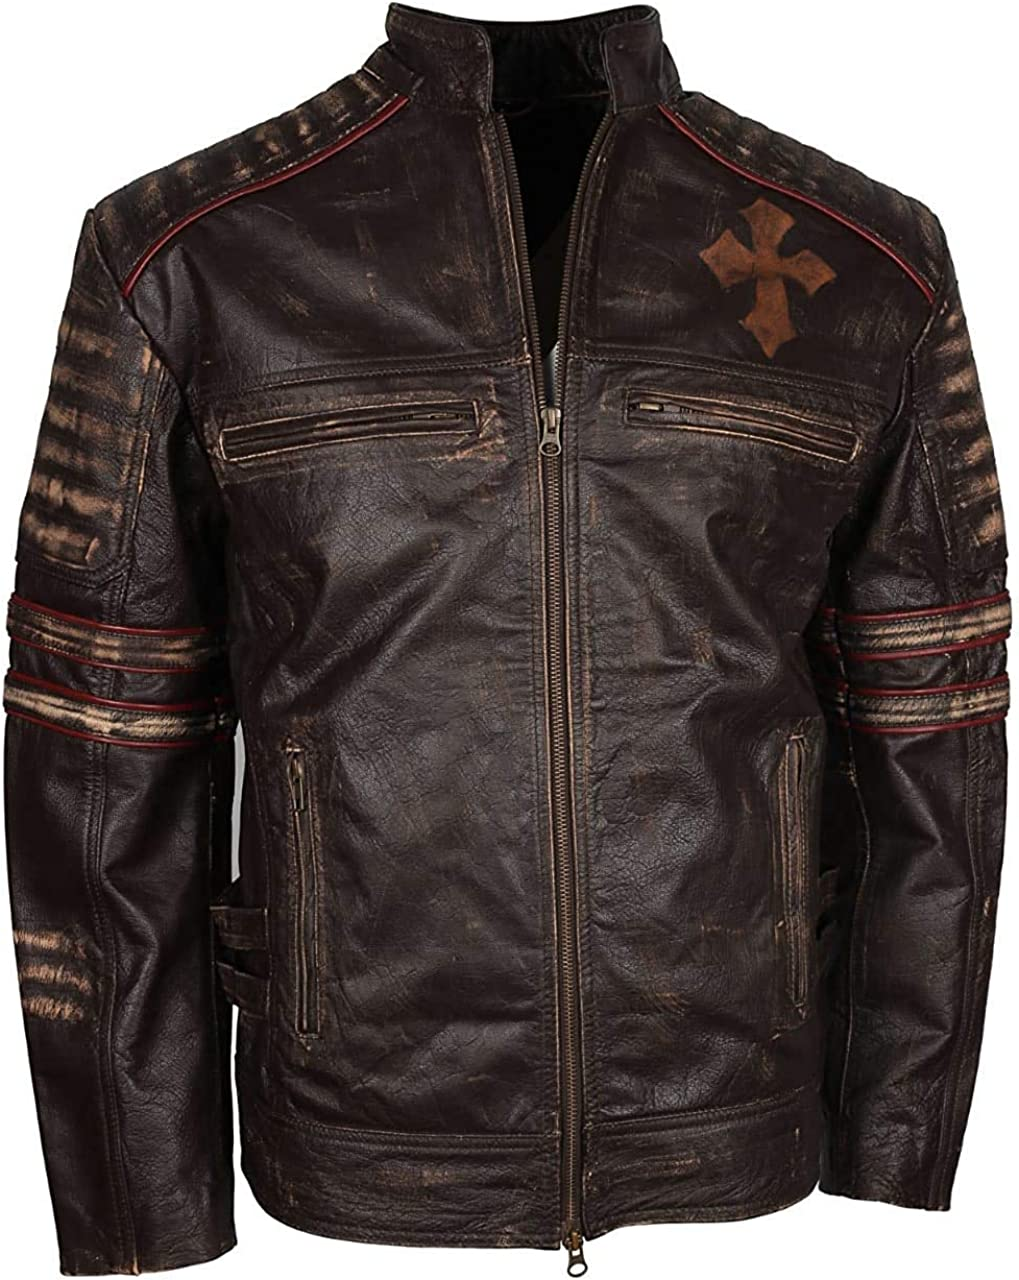 Mens Brown Leather Jacket with Cross Logo | Brown Leather Jackets | Brown Leather Jackets for Men | Cafe Racer Leather Jacket